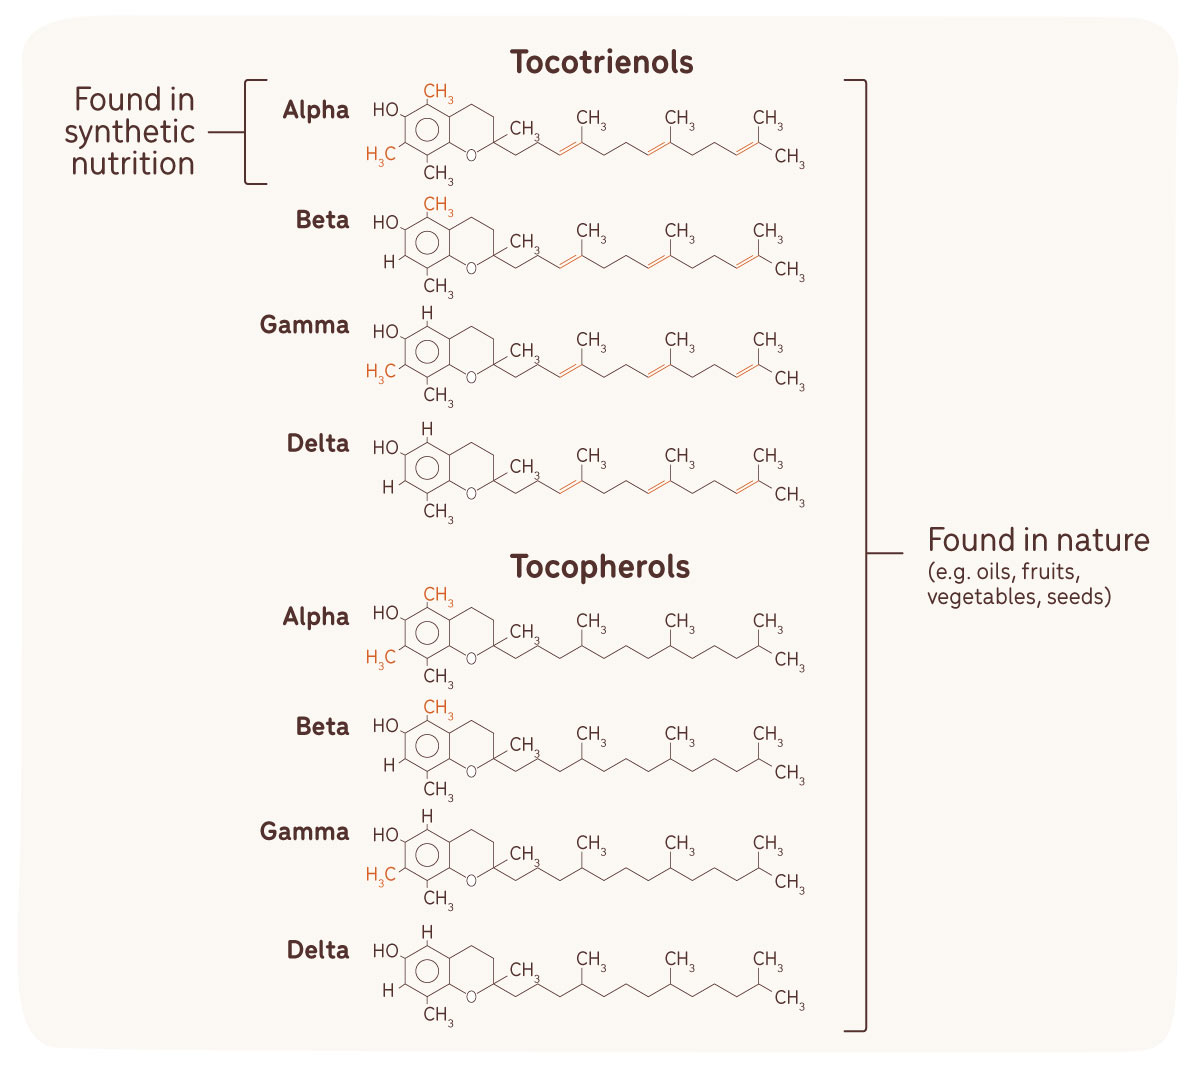 vitamin found in synthetic nutrition versus nature